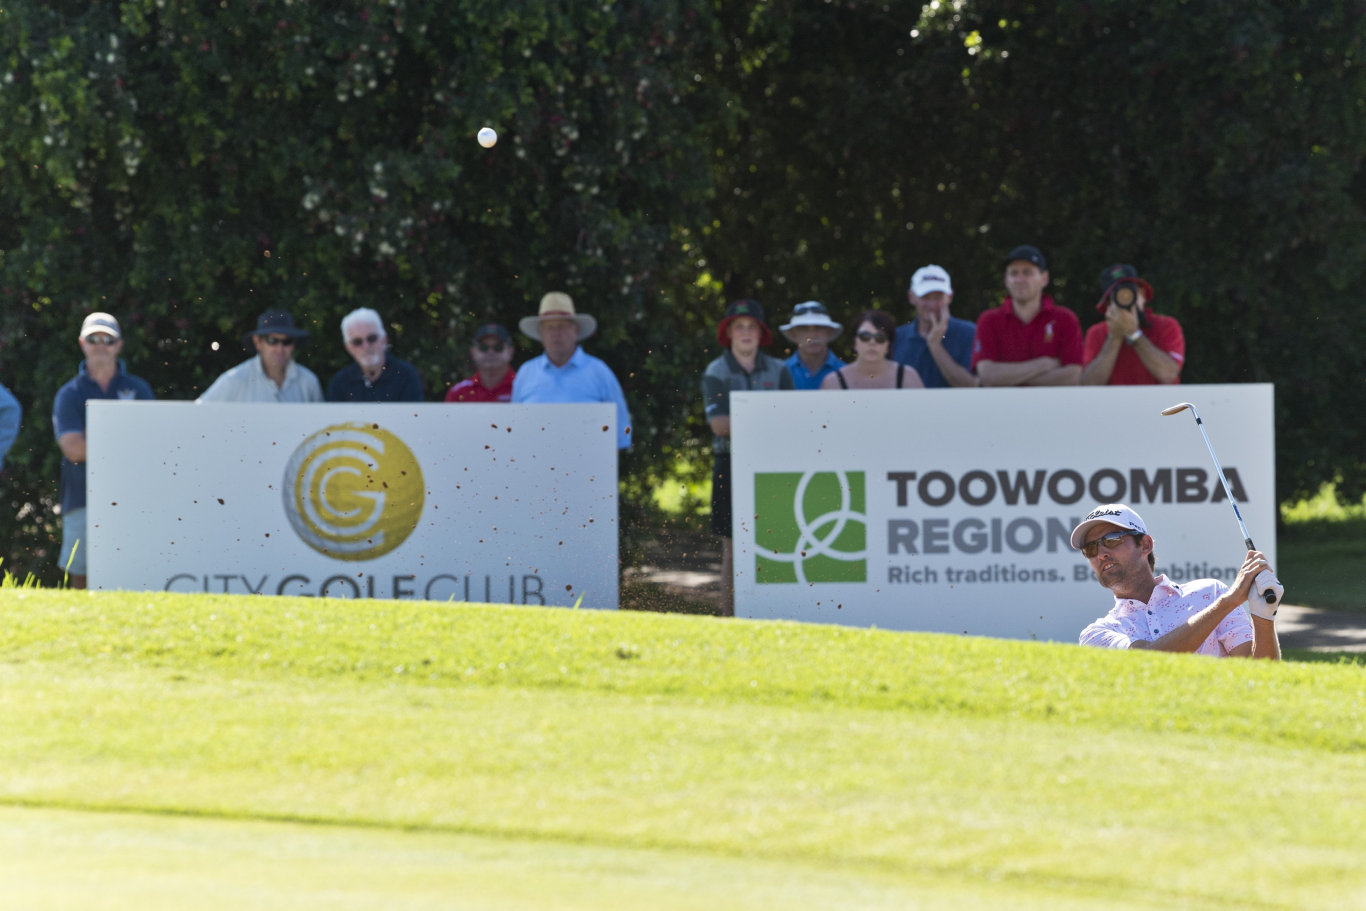 Michael Sim in a four-hole playoff for the 2020 Queensland PGA Championship at City Golf Club, Sunday, February 16, 2020. Picture: Kevin Farmer